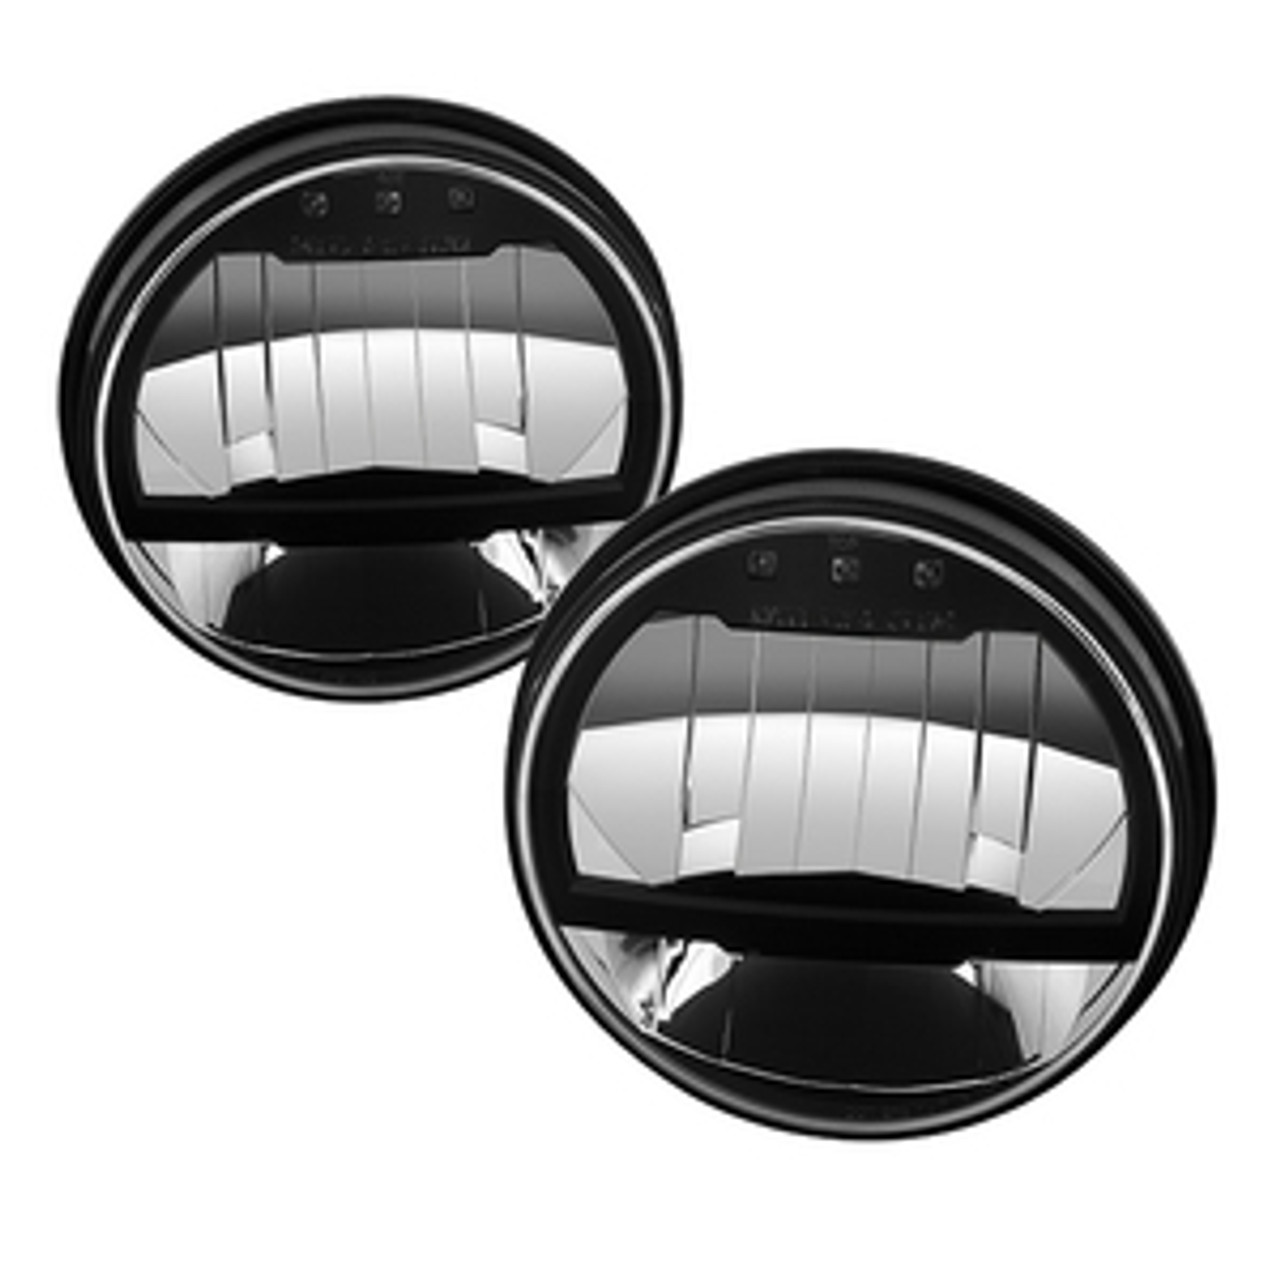 NEW FOR 2018 SPYDER CRYSTAL HEADLIGHTS HD-YD-JW07-LED-BK. SOLD IN PAIRS.